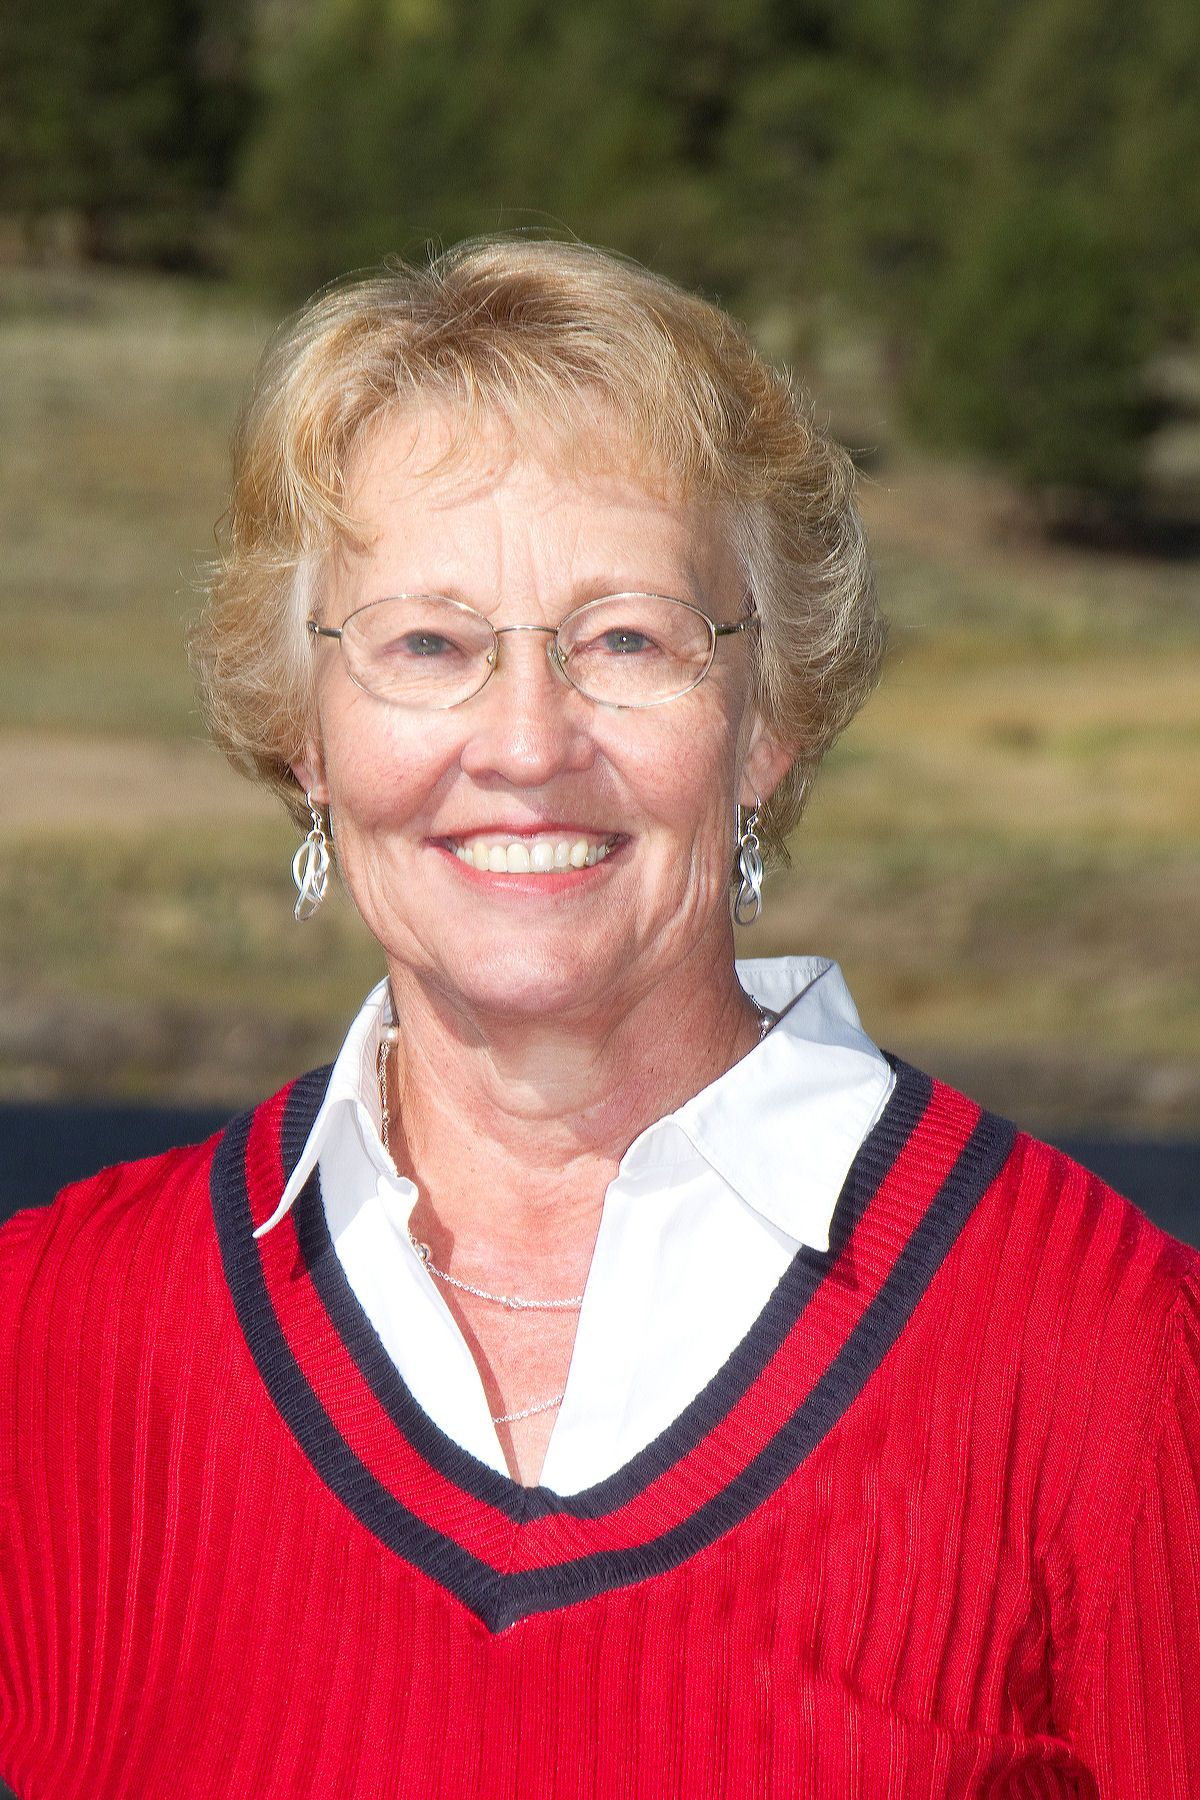 Image of Nancy Hollen Realtor with First Colorado Land Office in Salida Colorado